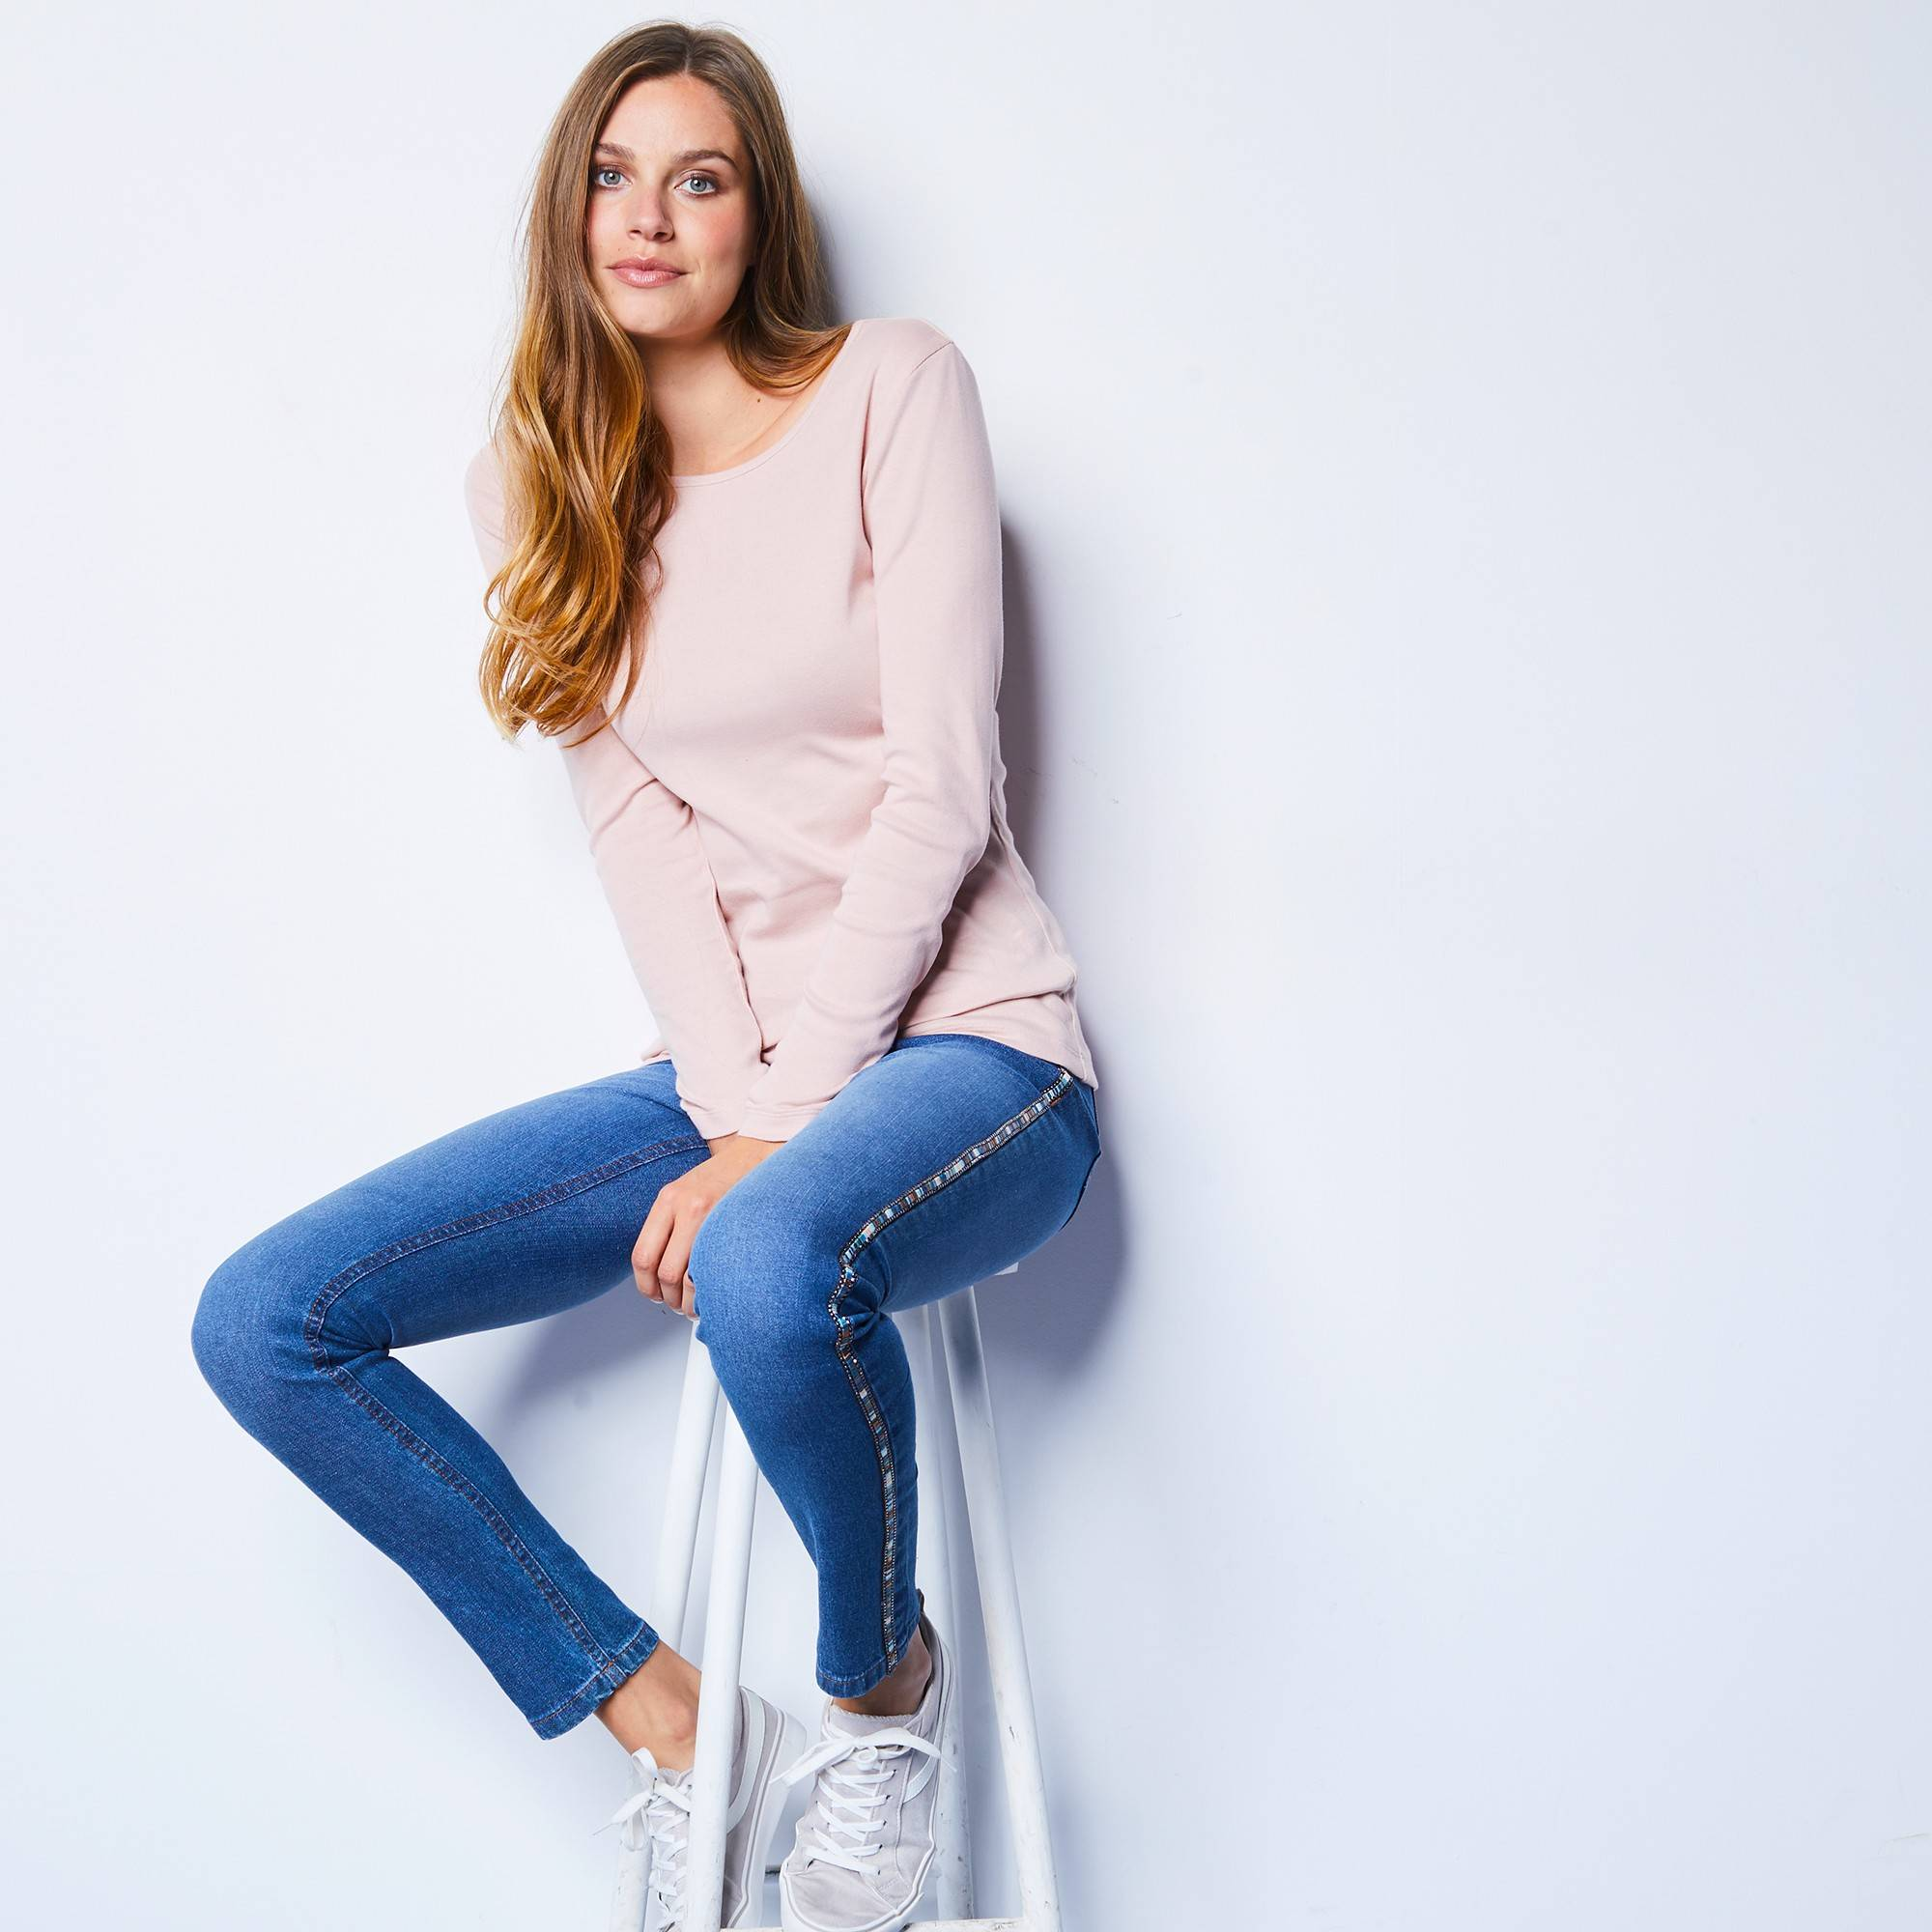 Tee-shirt manches longues - rose poudré - Rose - Taille : 42,44 - Blancheporte